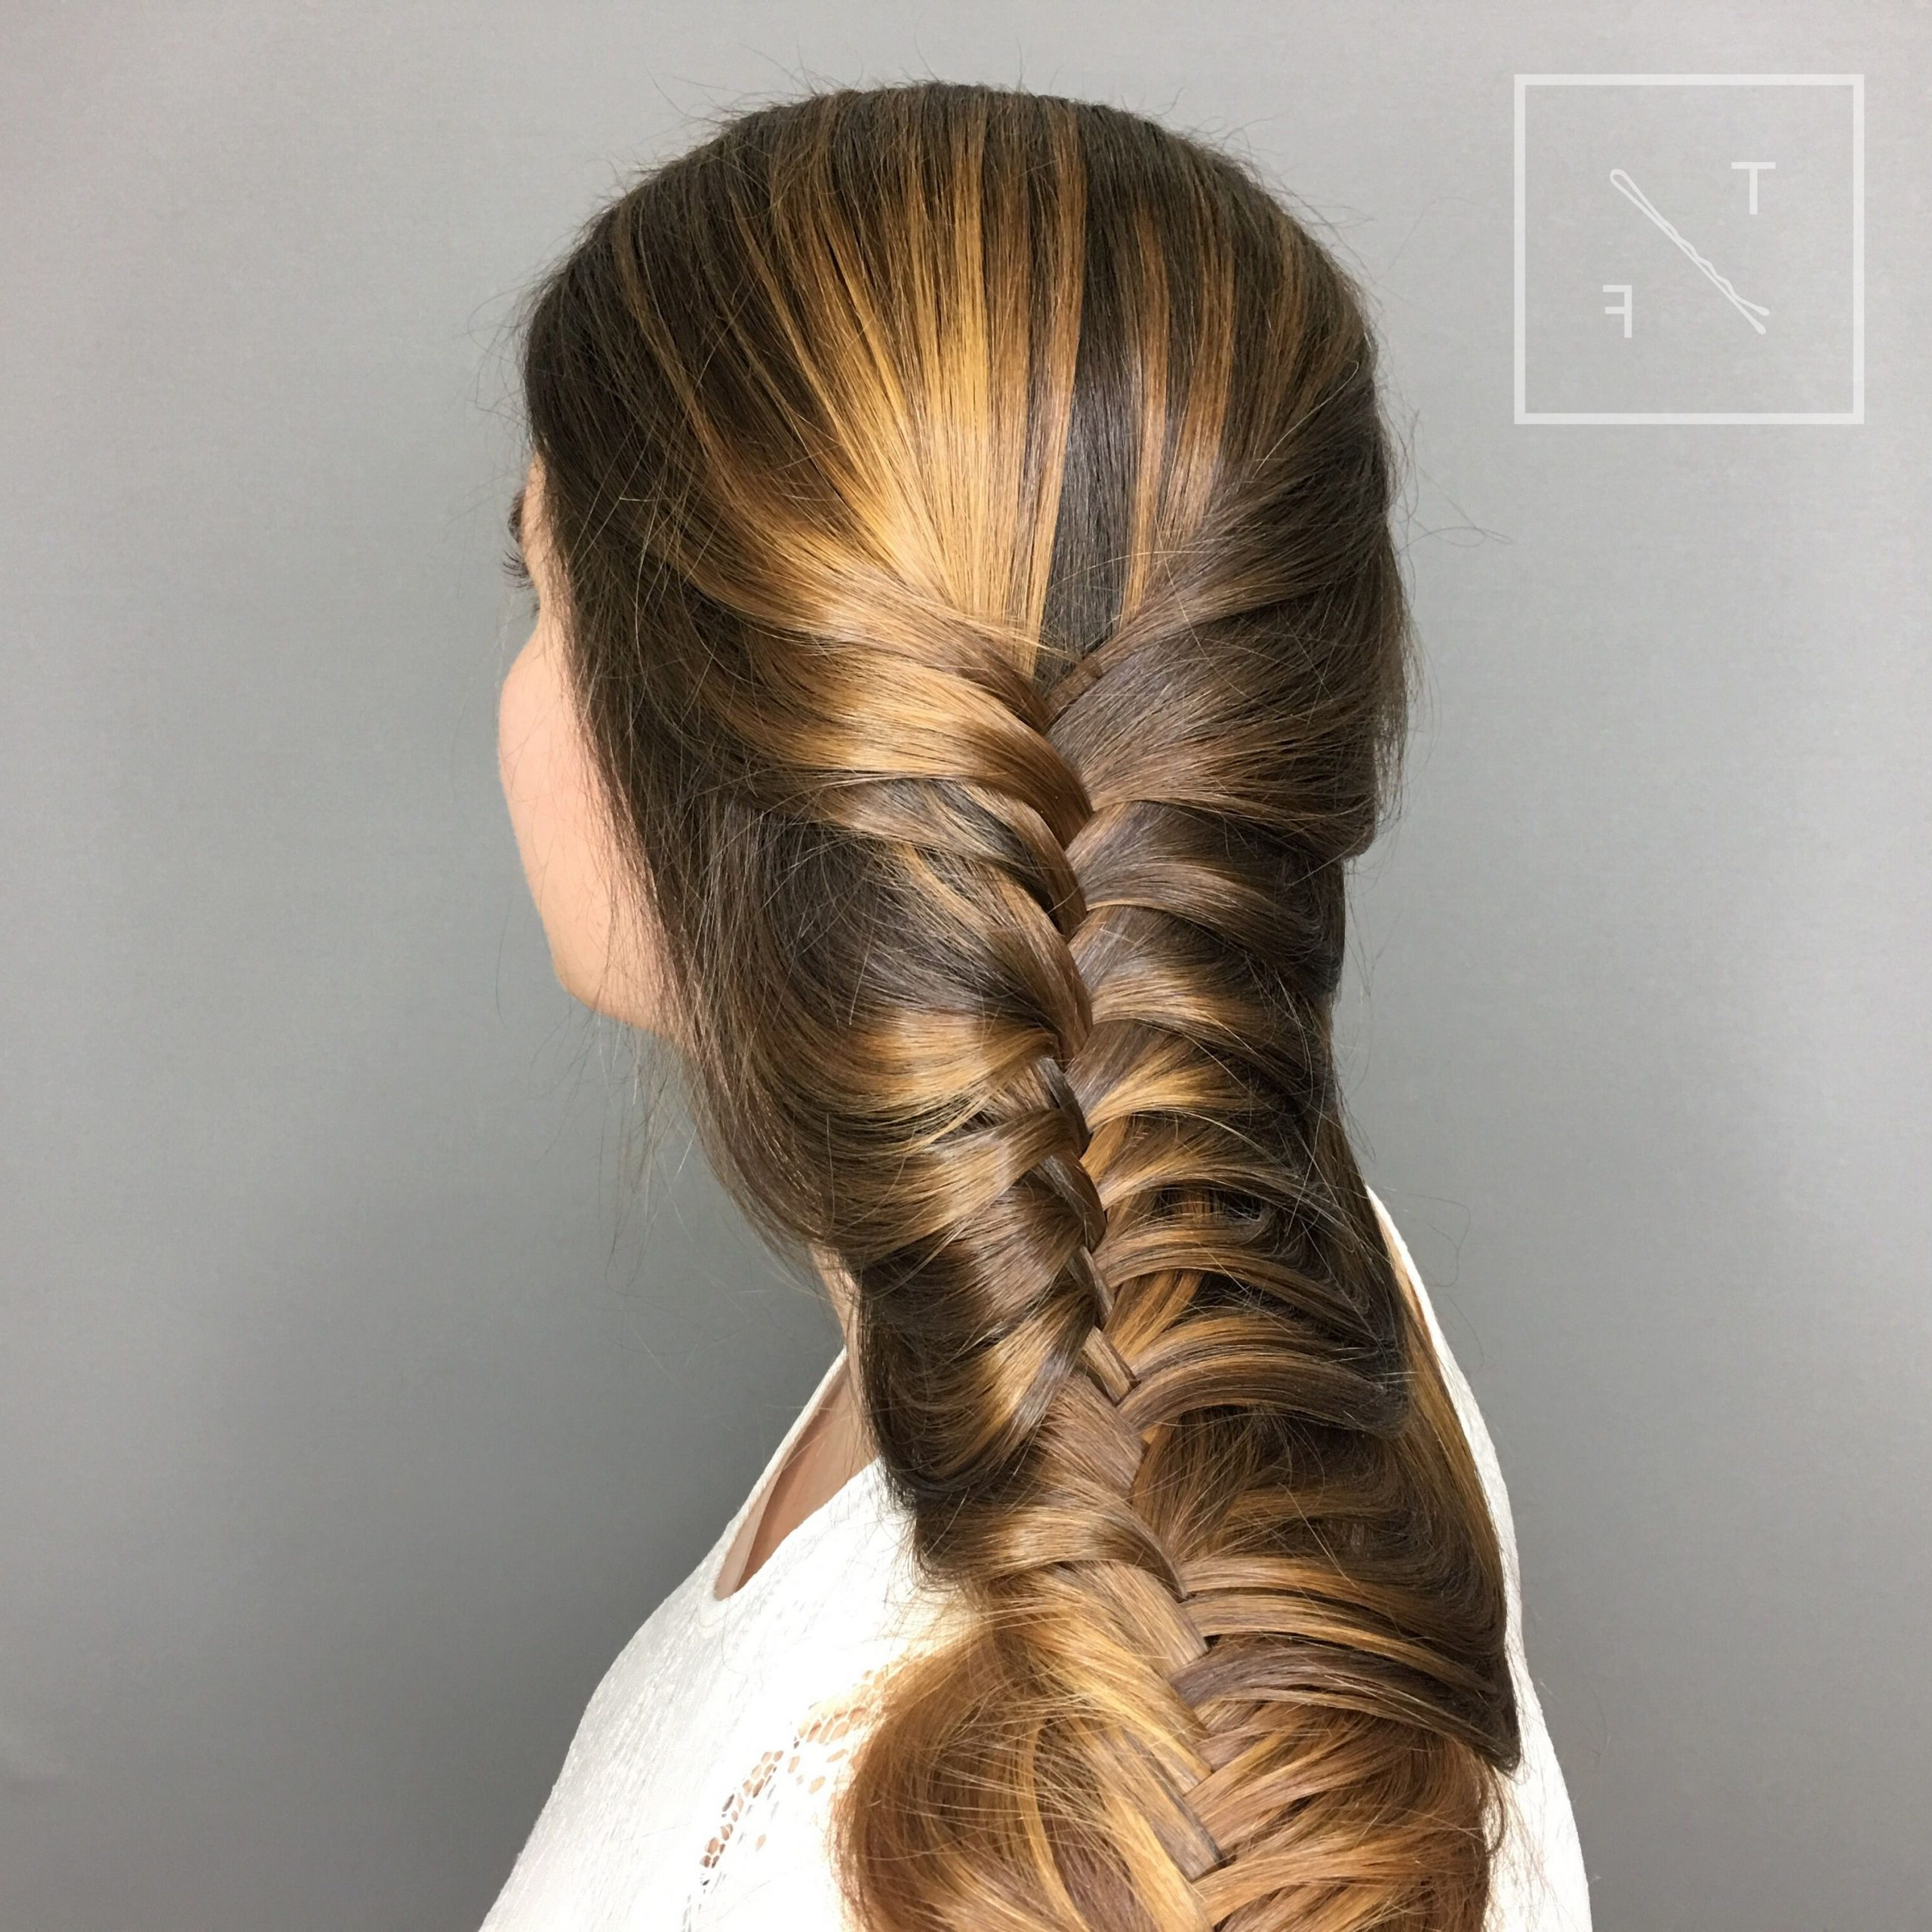 2020 Ponytail Fishtail Braid Hairstyles Regarding Fashion : The New Ponytail Fishtail Braid Hairstyles Gallery (View 10 of 20)